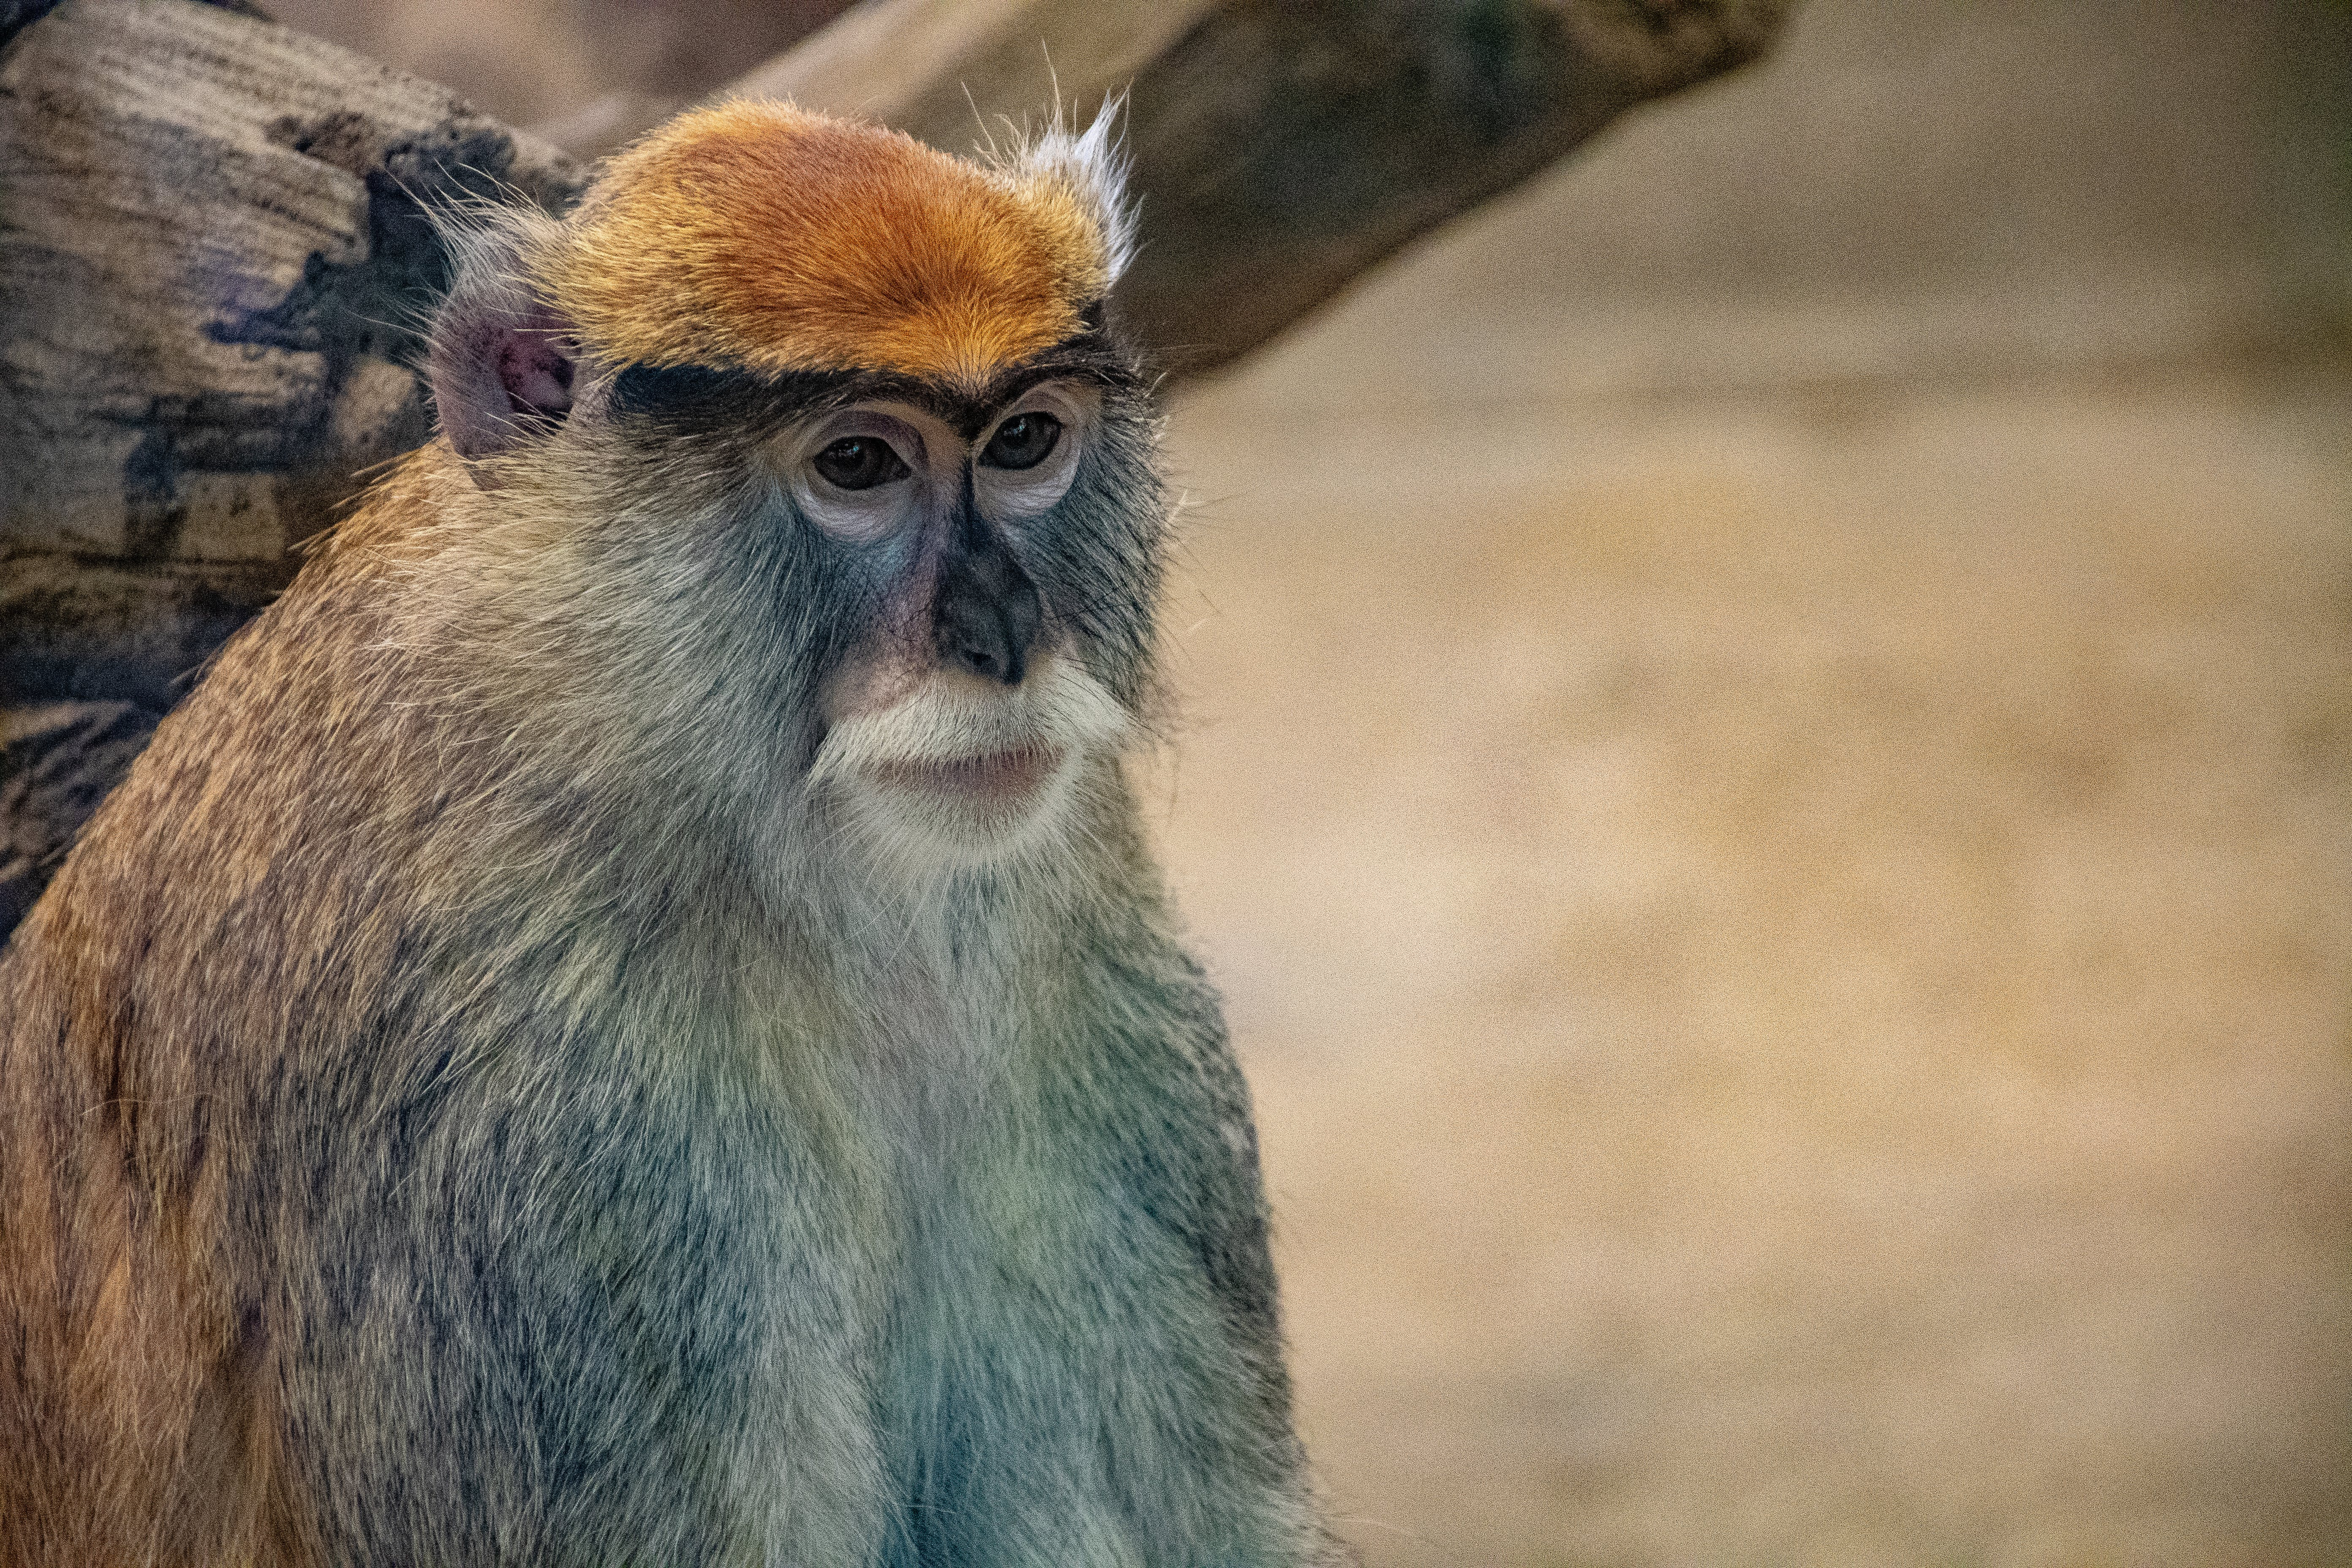 Selective Focus Photo of Grey Monkey